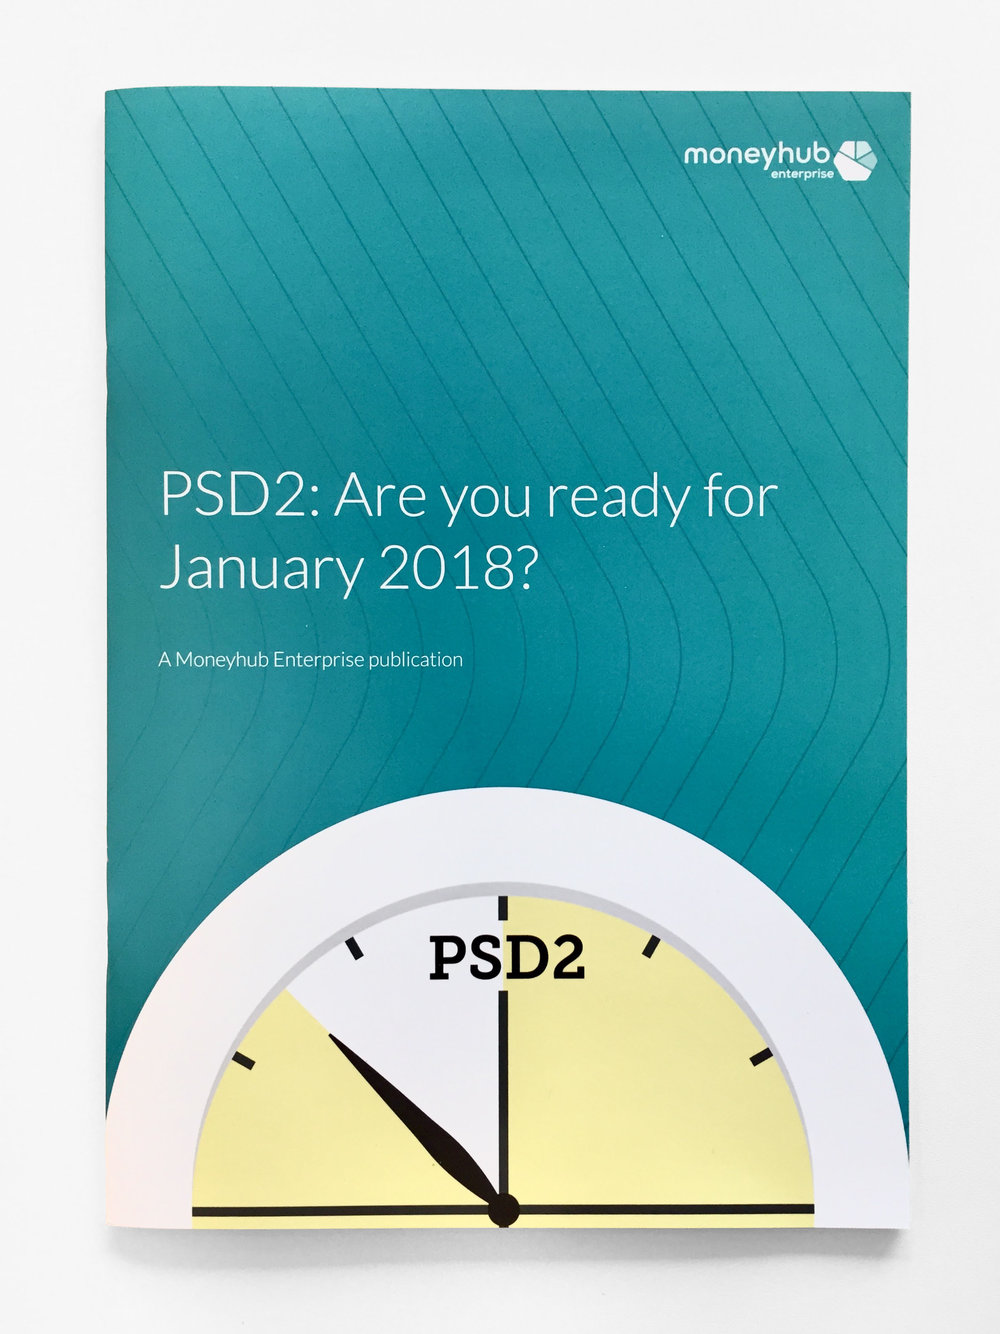 PSD2 Publication by Moneyhub Enterprise